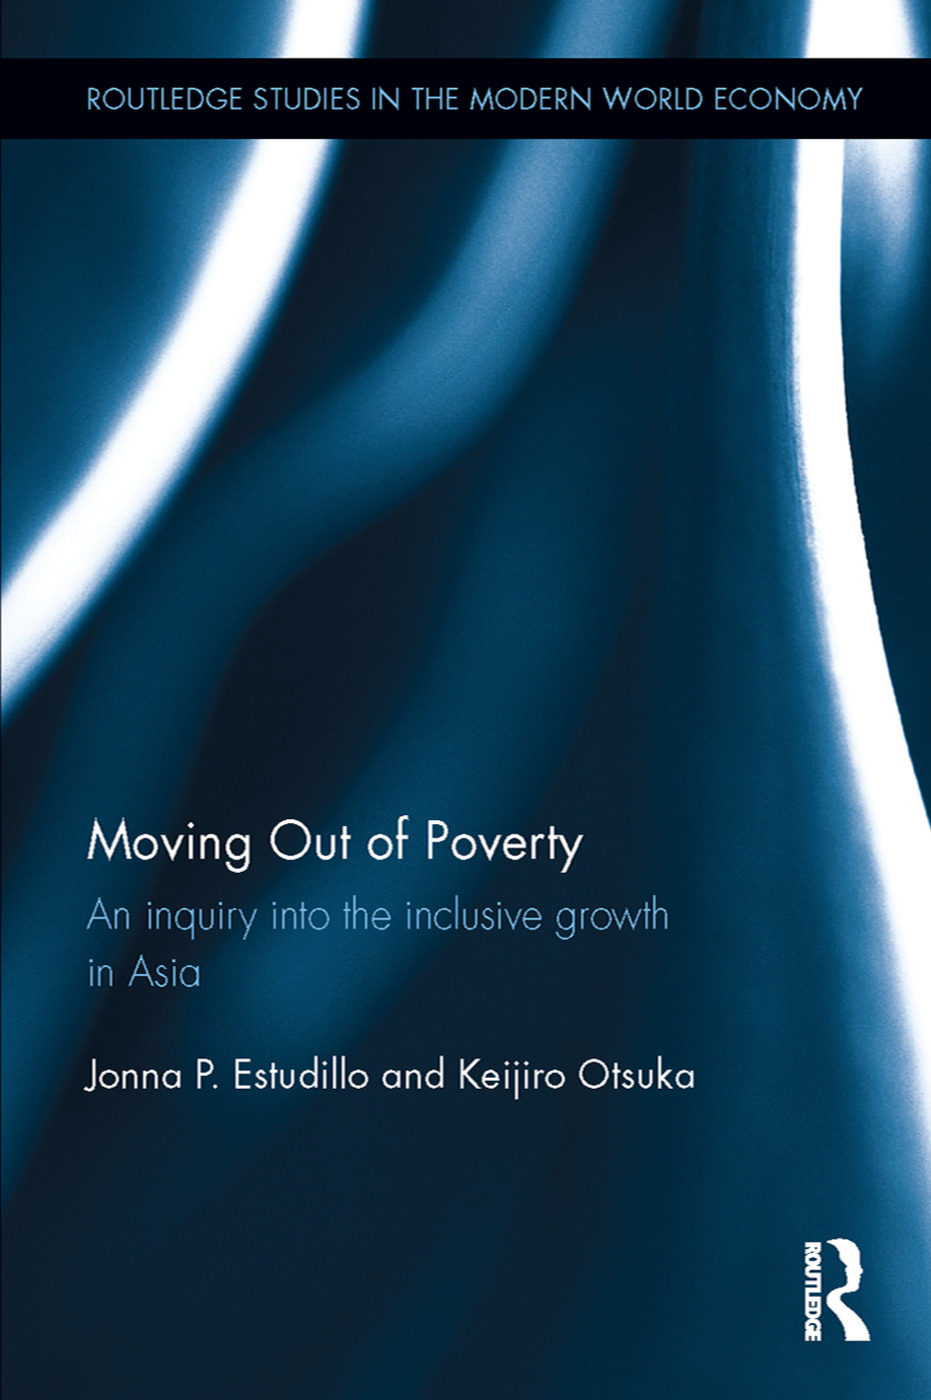 Moving Out of Poverty: An inquiry into the inclusive growth in Asia book cover